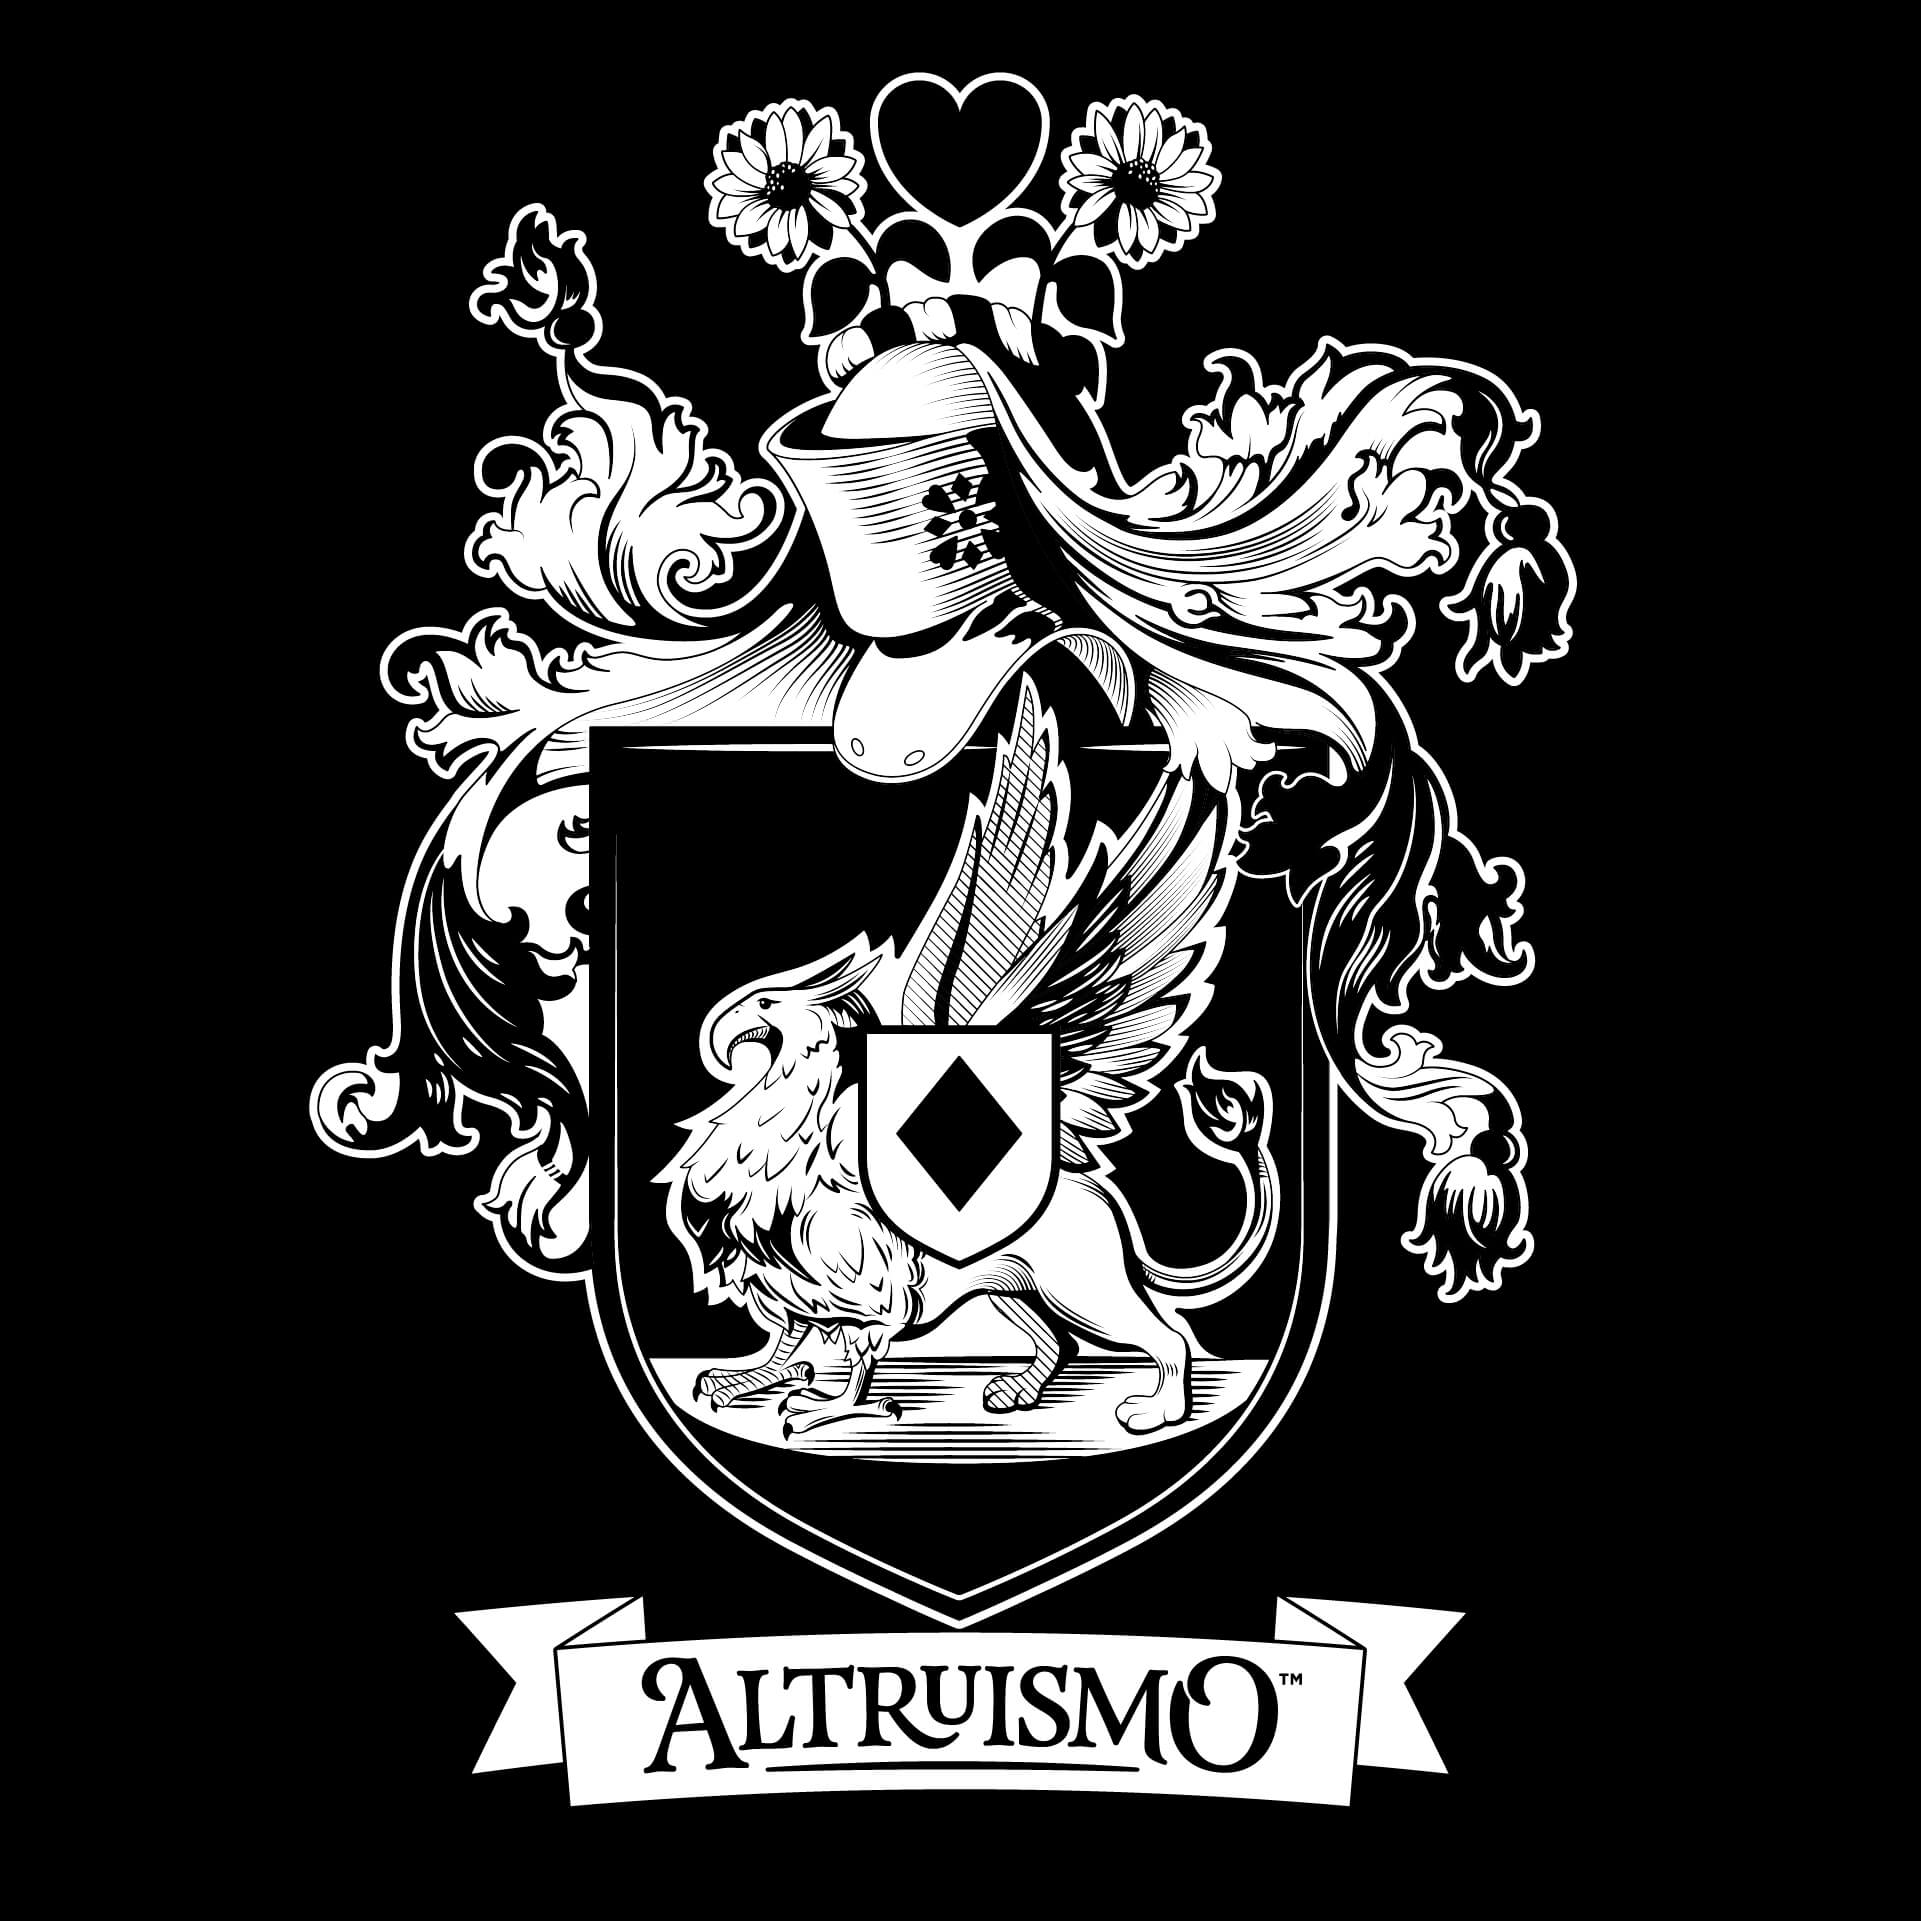 Altruismo's Crest - Full Color (for White/Light backgrounds).↓ Download EPS | ↓ Download PNGBlack and White (for White/Light backgrounds).↓ Download EPS | ↓ Download PNG—Full Color (for Black/Dark backgrounds).↓ Download EPS | ↓ Download PNGBlack and White (for Black/Dark backgrounds).↓ Download EPS | ↓ Download PNG